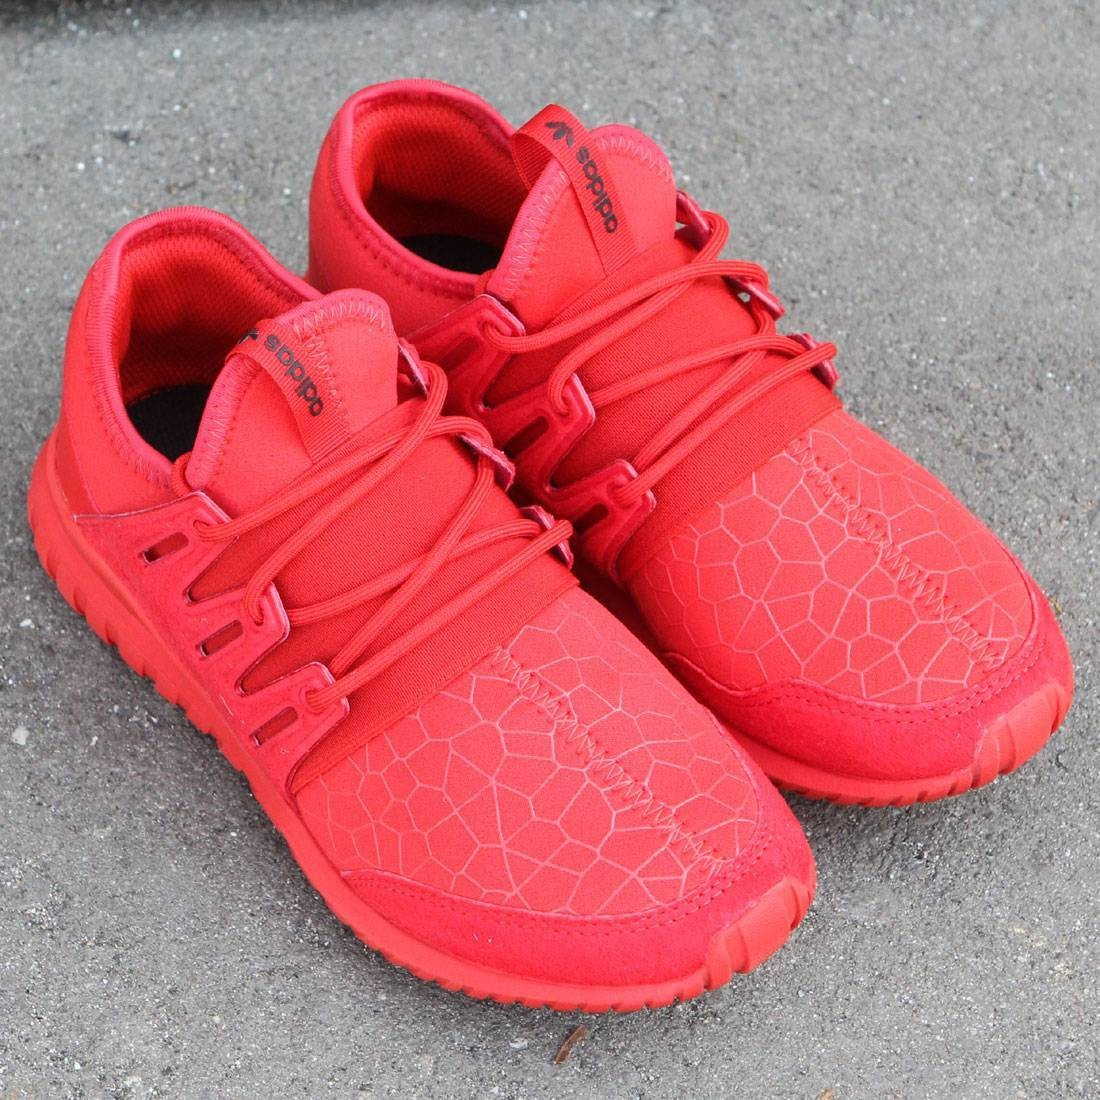 hot sale online 5eee2 86492 all red adidas tubular radial